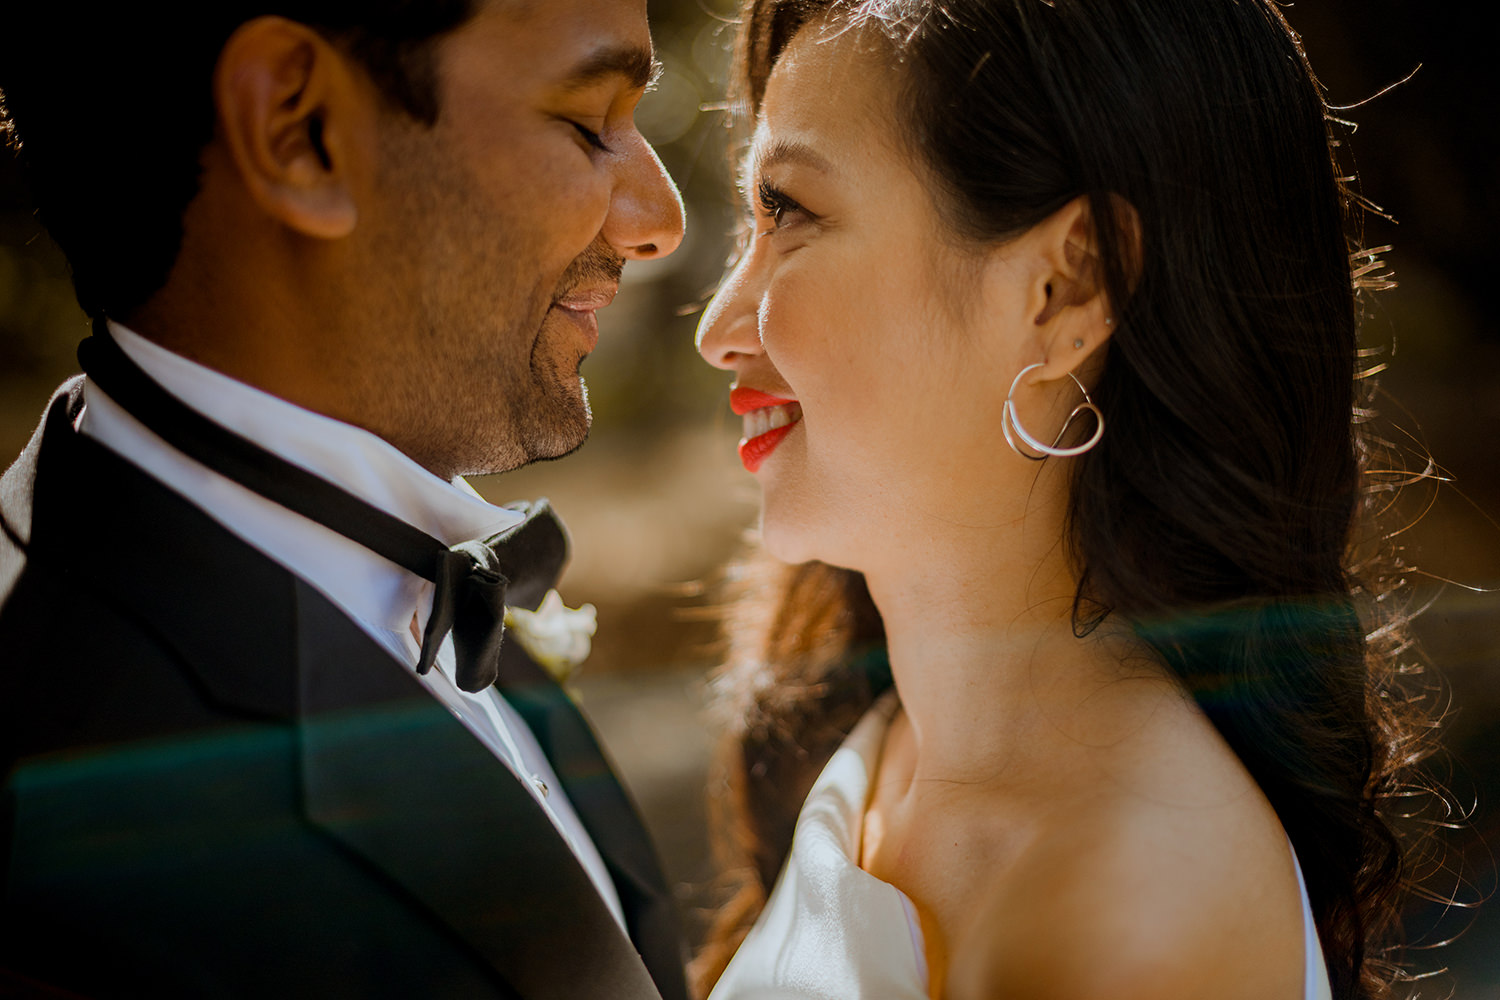 Indian groom and Vietnamese bride staring into each others' eyes